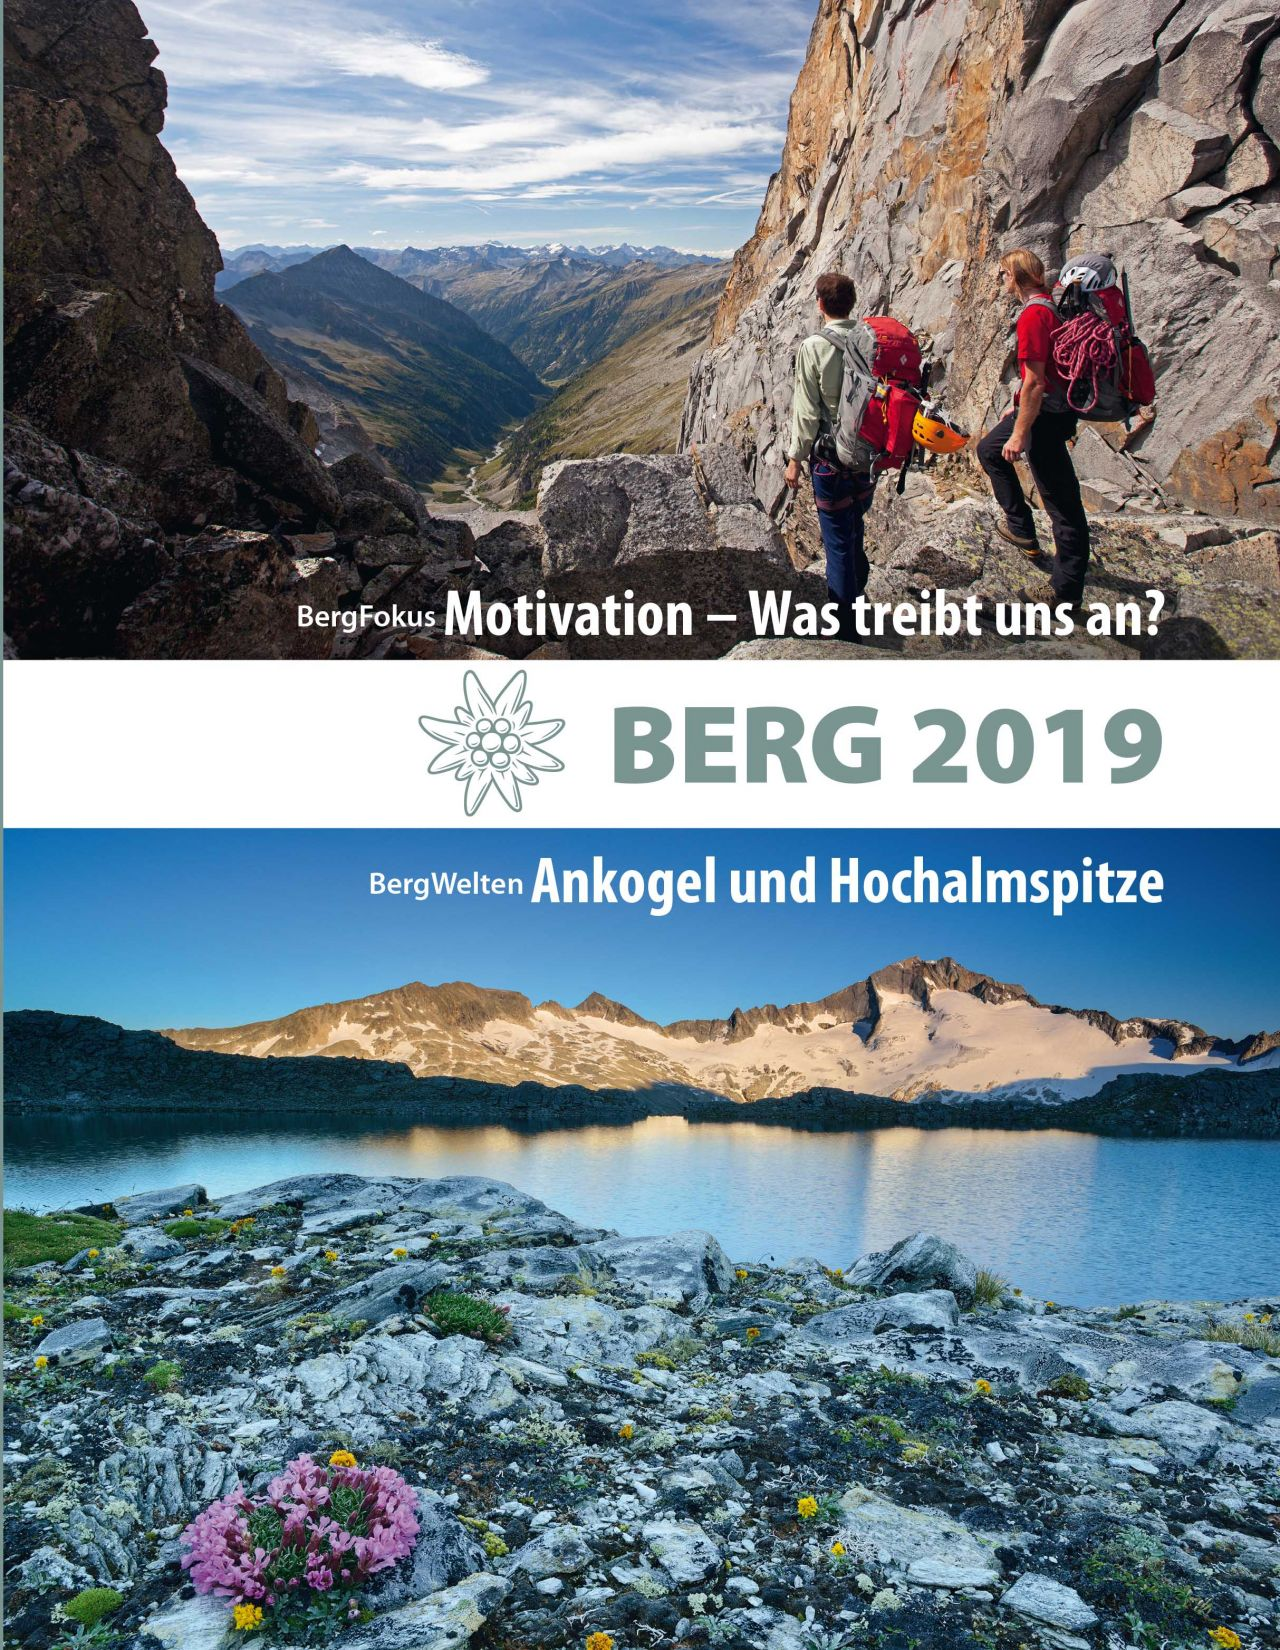 BERG 2019: